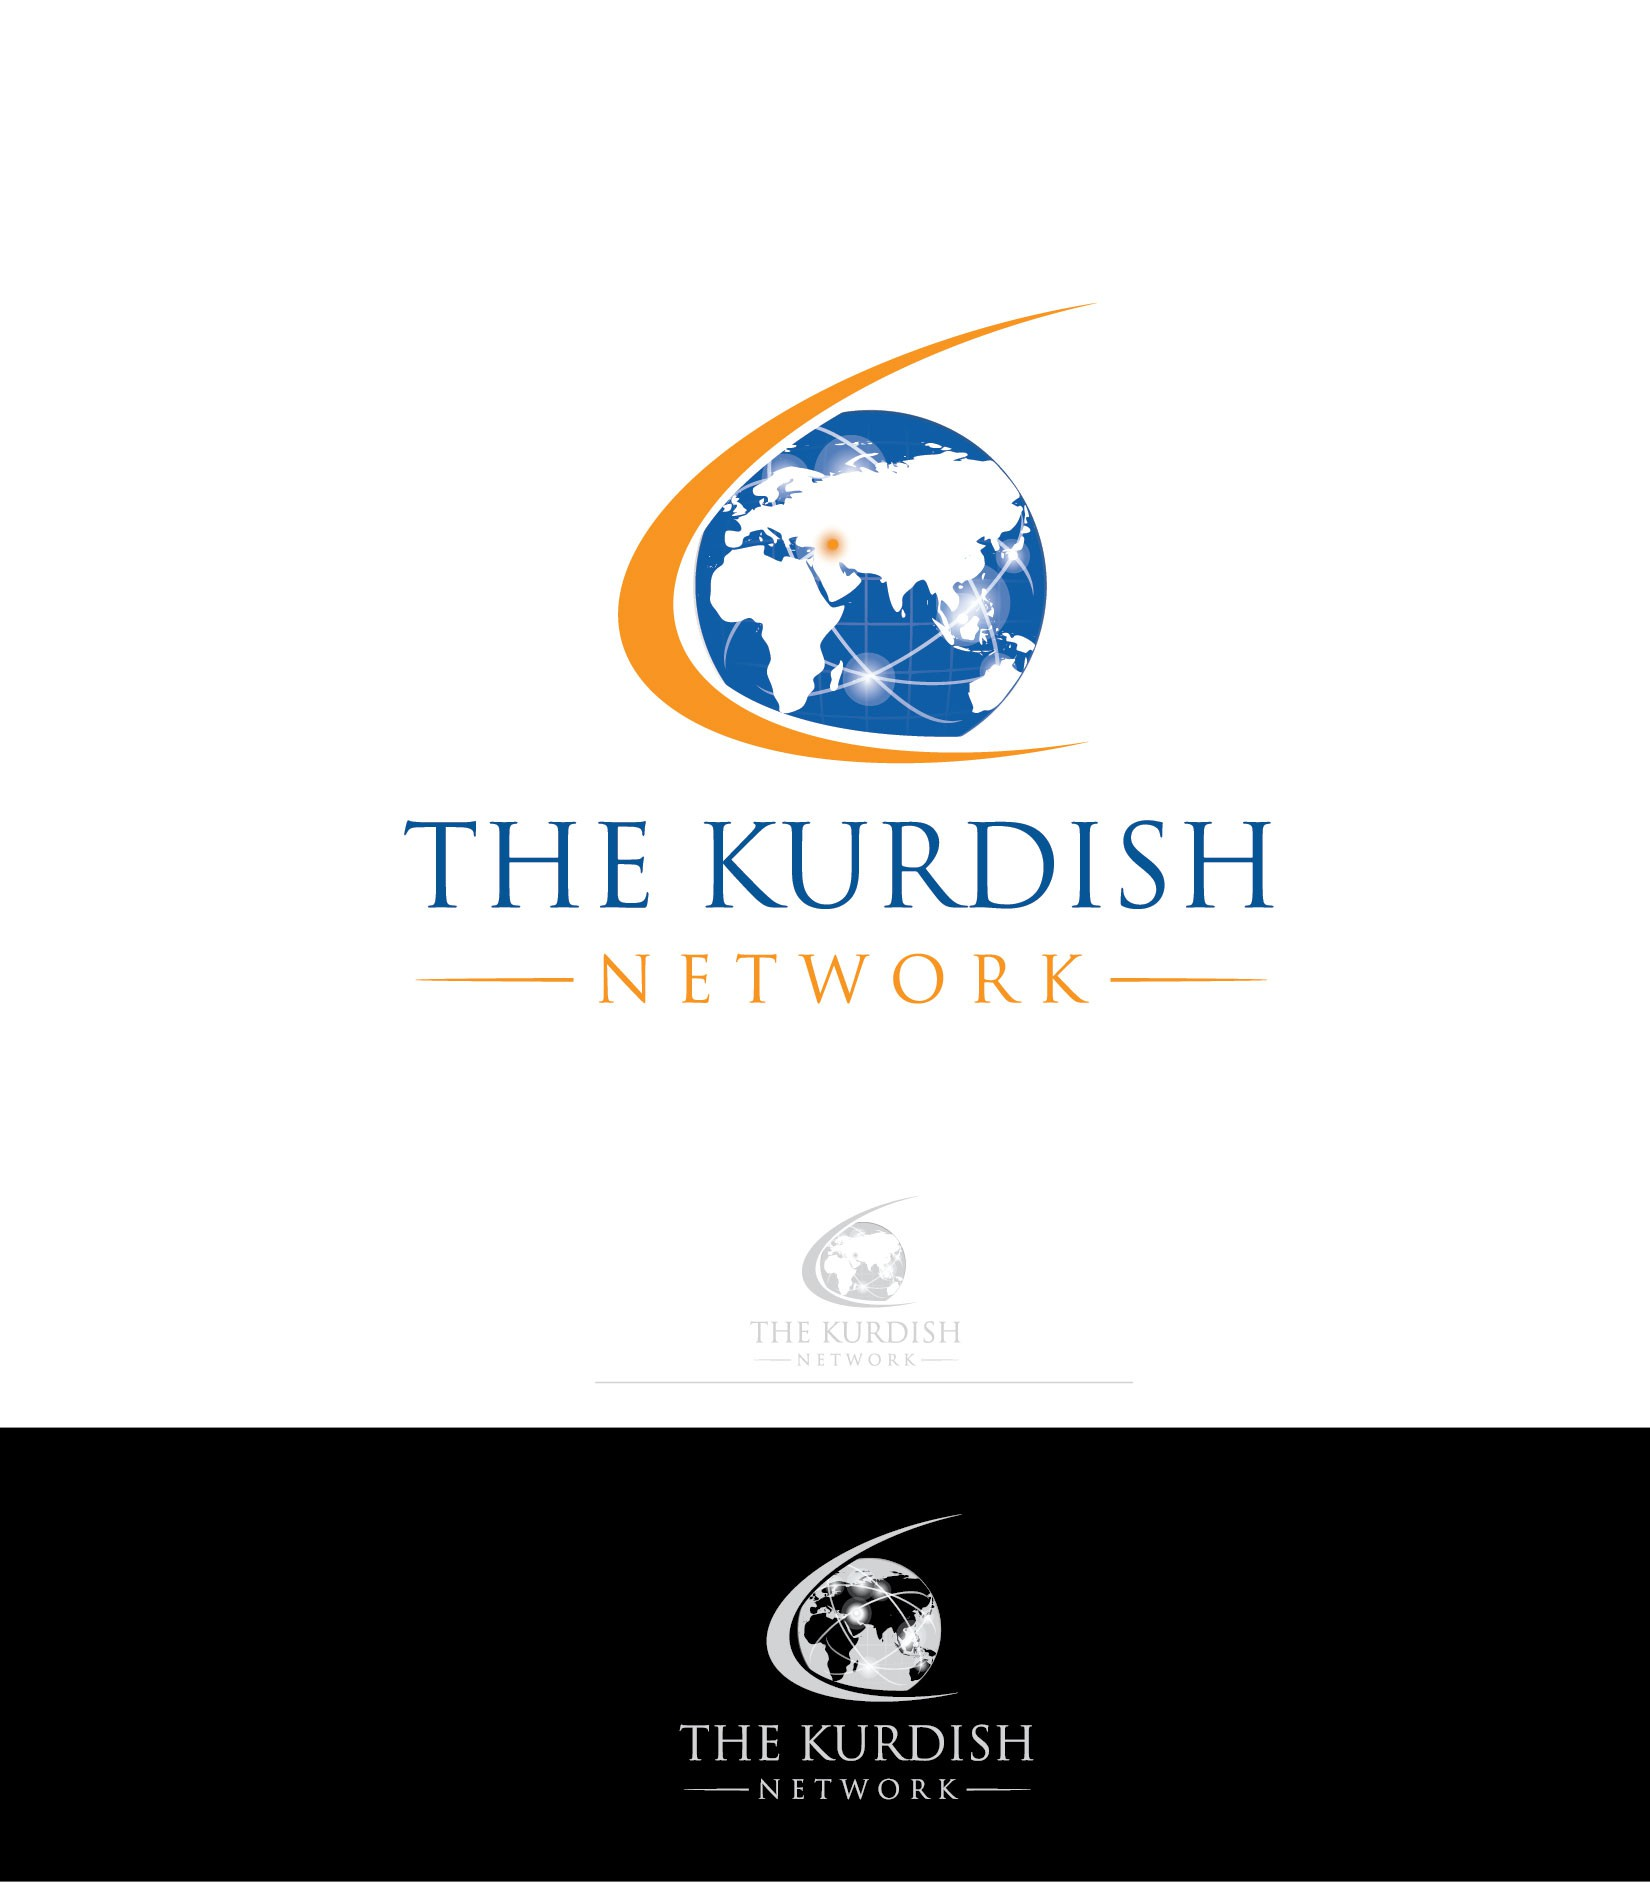 New logo wanted for The Kurdish Network